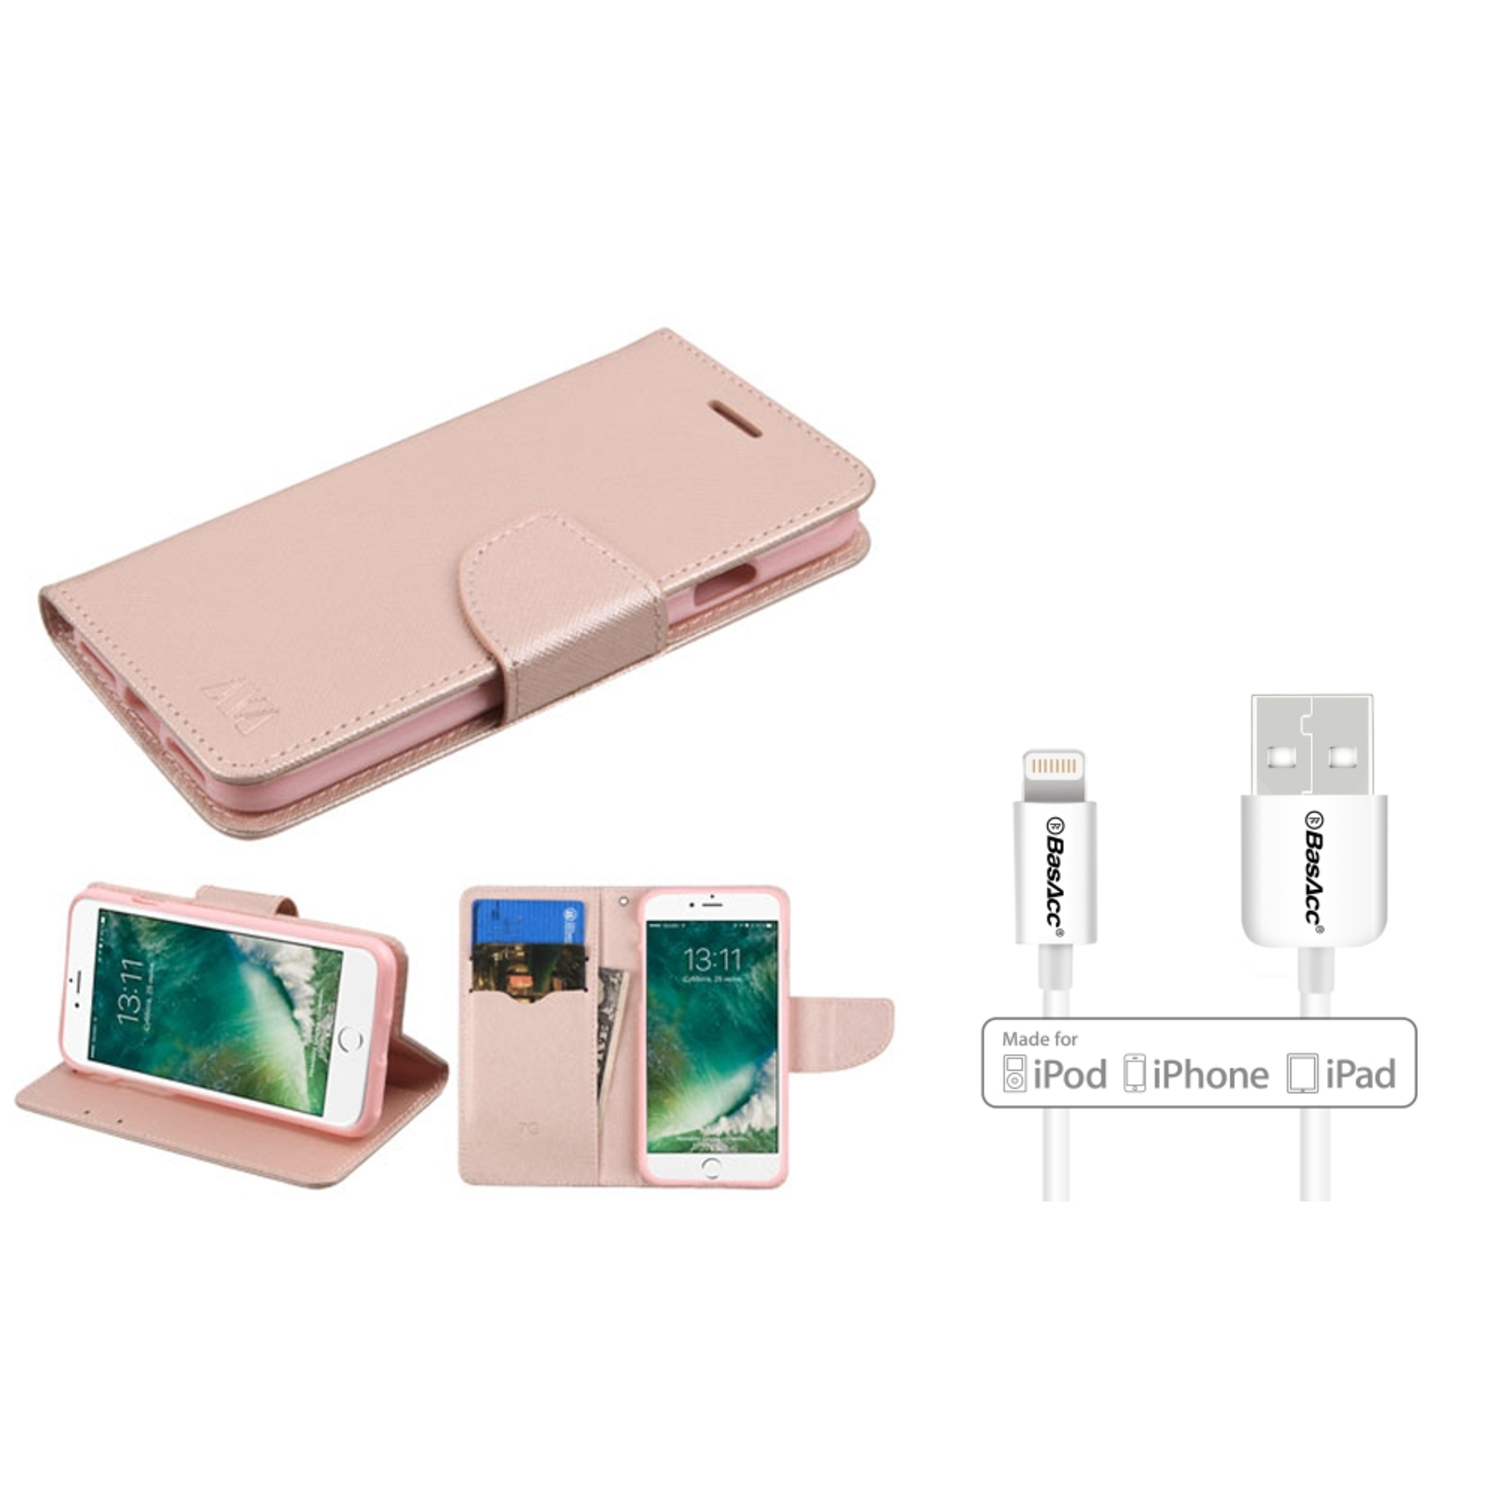 Insten Leather Wallet Stand Case with card slot - Rose Gold (+ 6' Long Apple Lightning Cable)